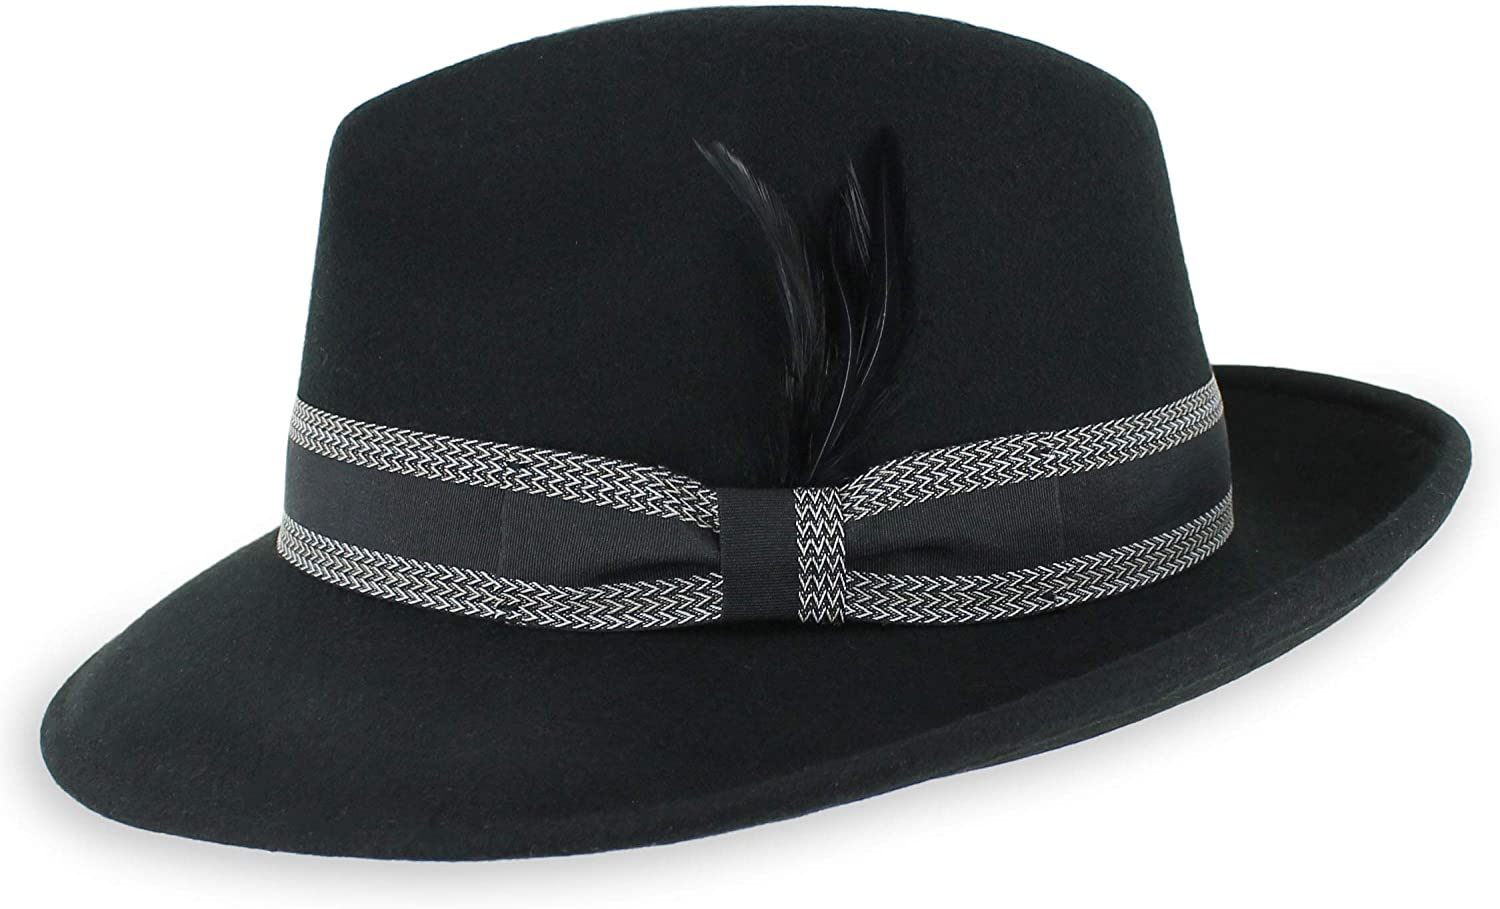 Belfry Crushable Dress Fedora Men's Vintage Style Hat 100% Pure New Free Shipping All stores are sold